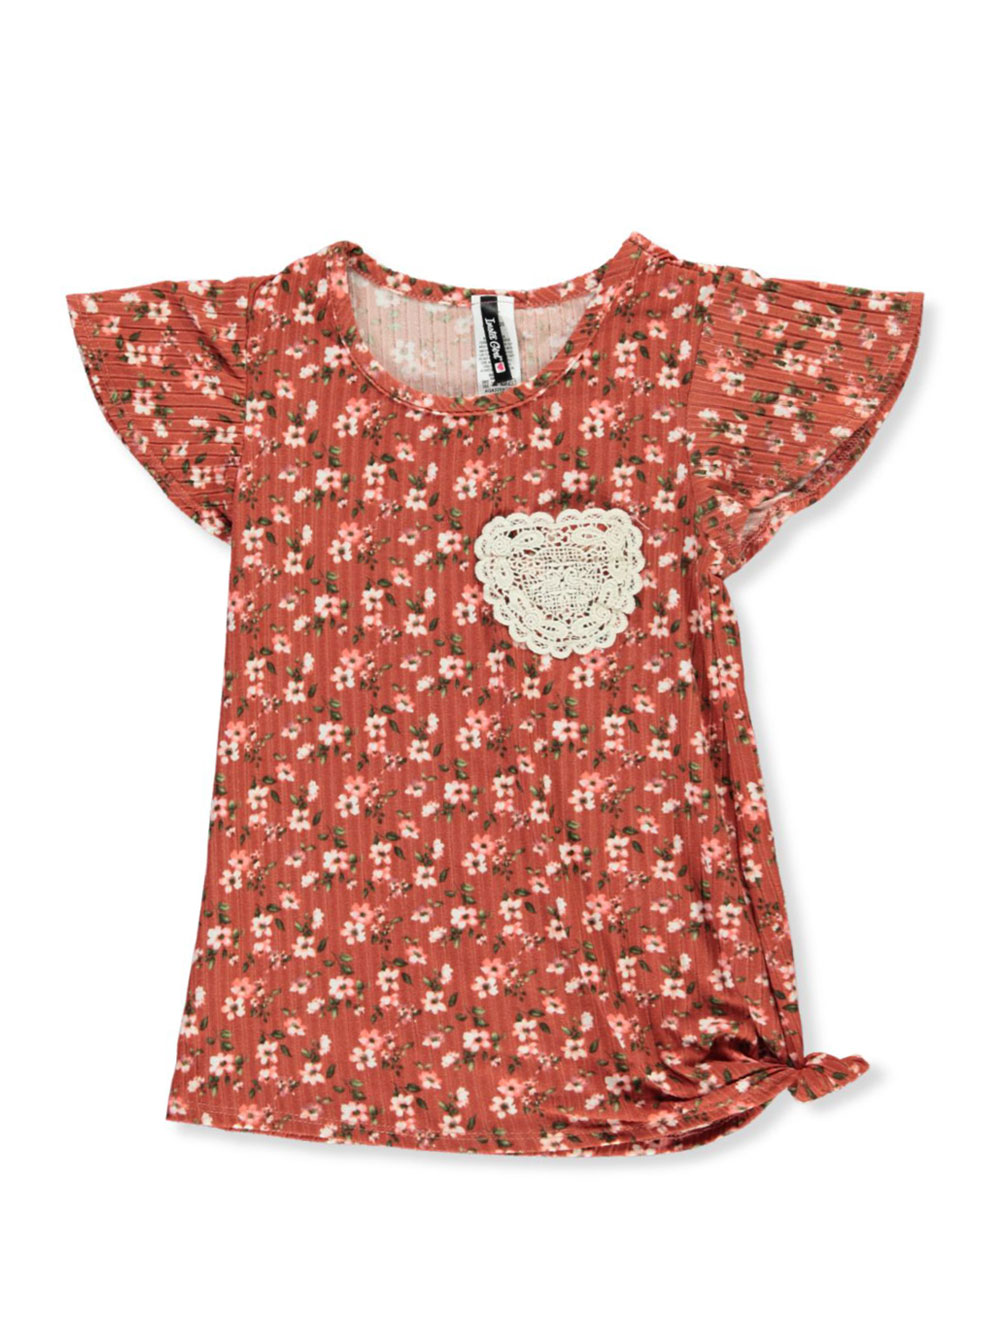 Size 8 Fashion Tops for Girls